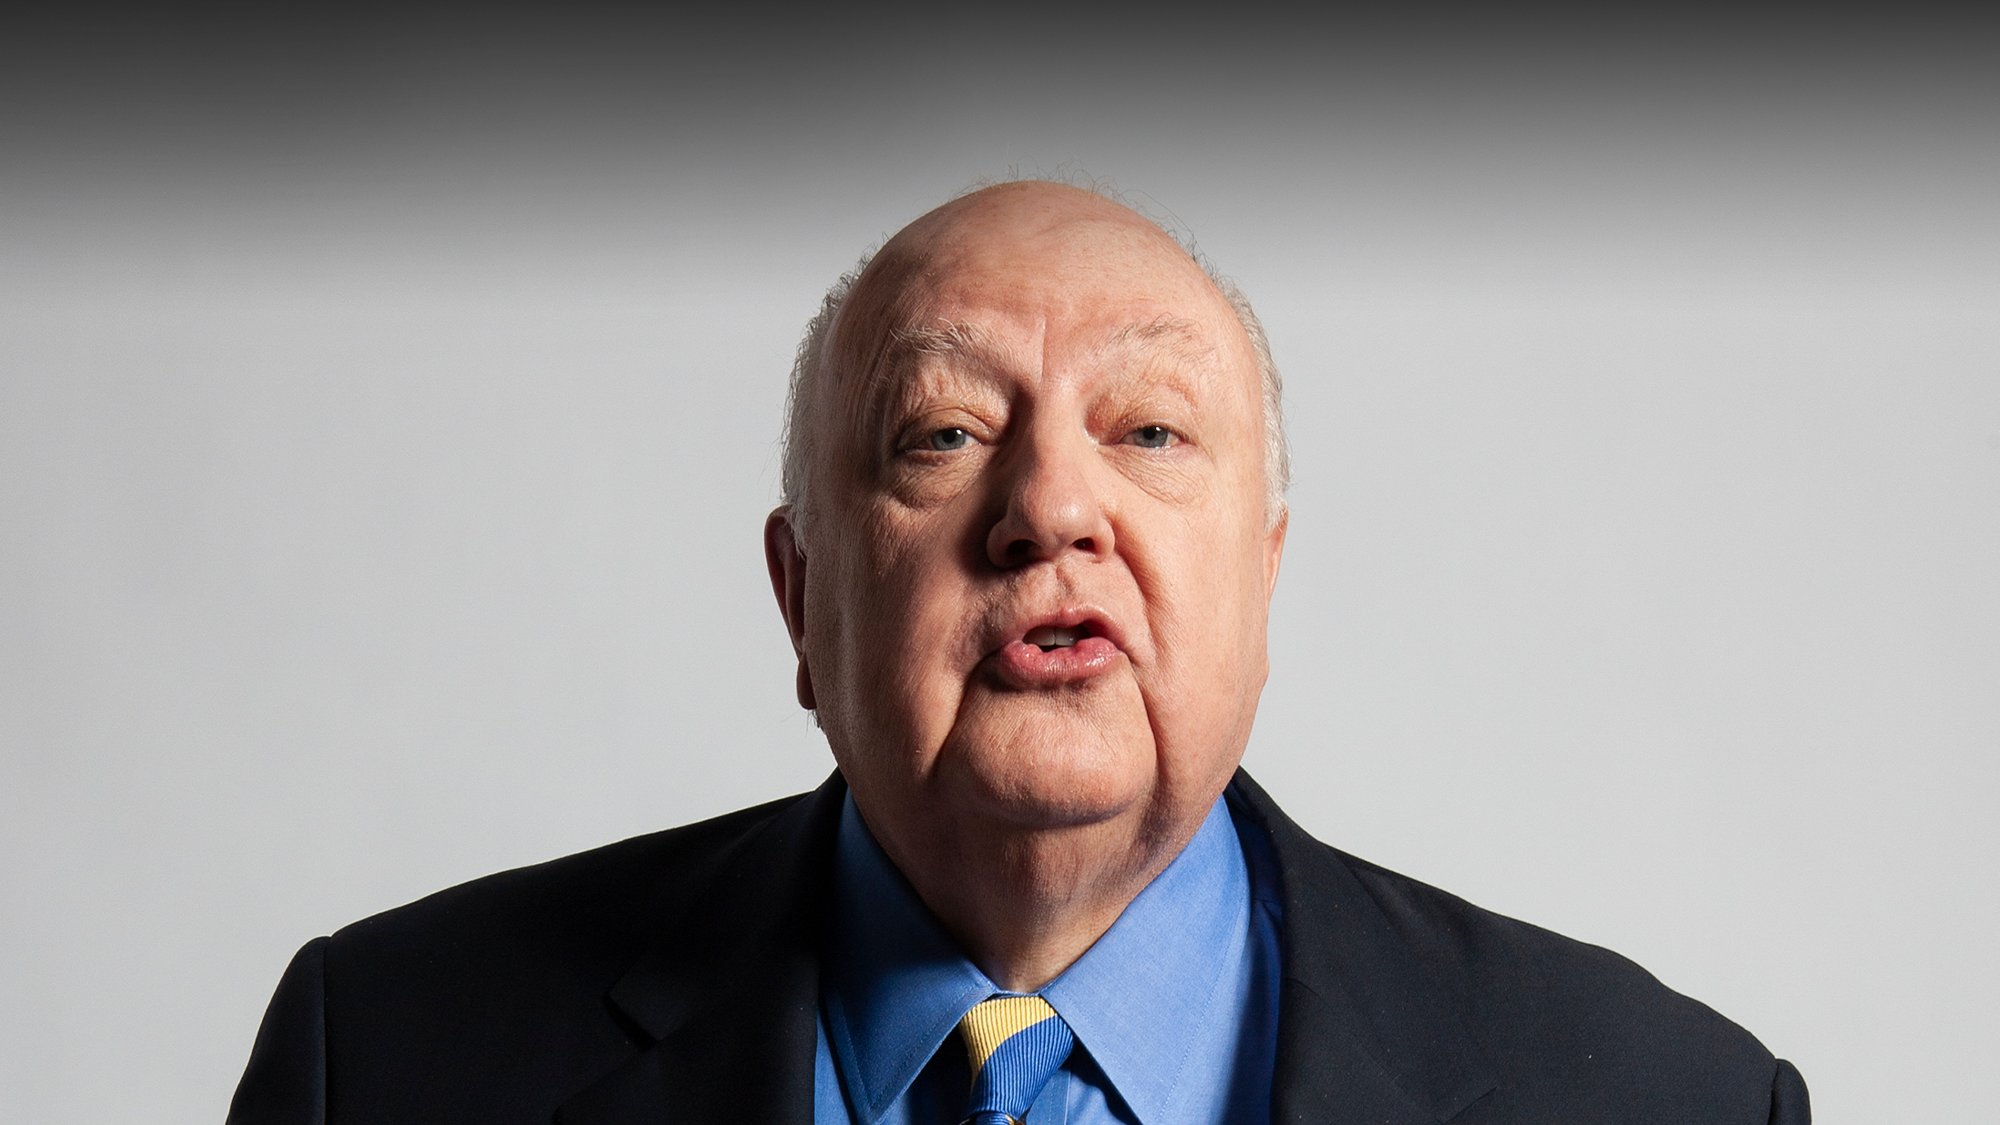 ‎Divide & Conquer: The Story of Roger Ailes